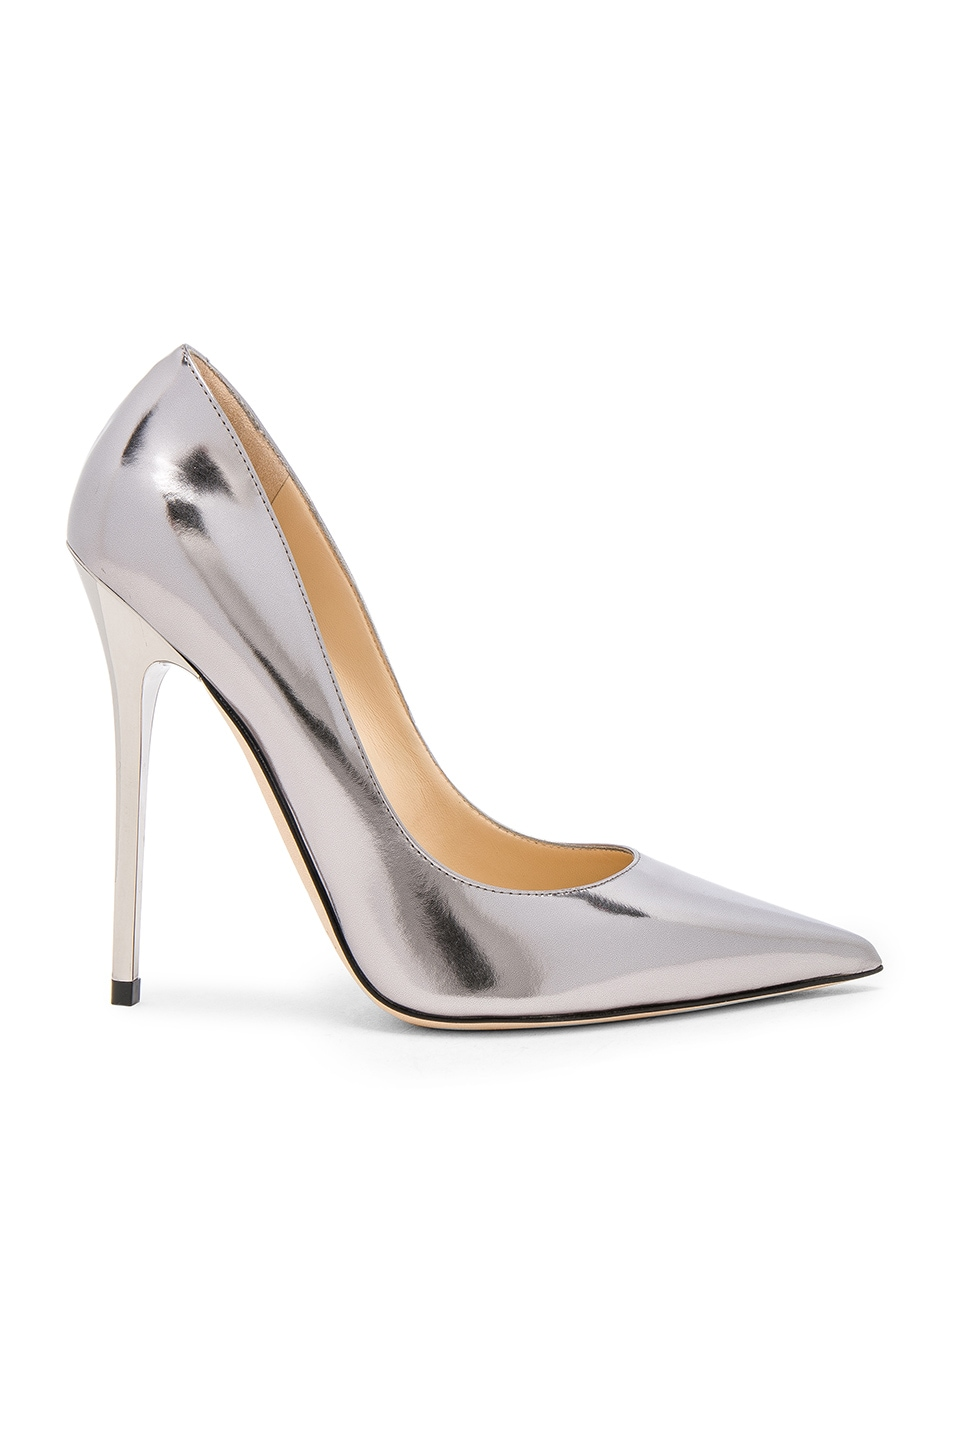 Image 1 of Jimmy Choo Mirror Leather Anouk Heels in Steel